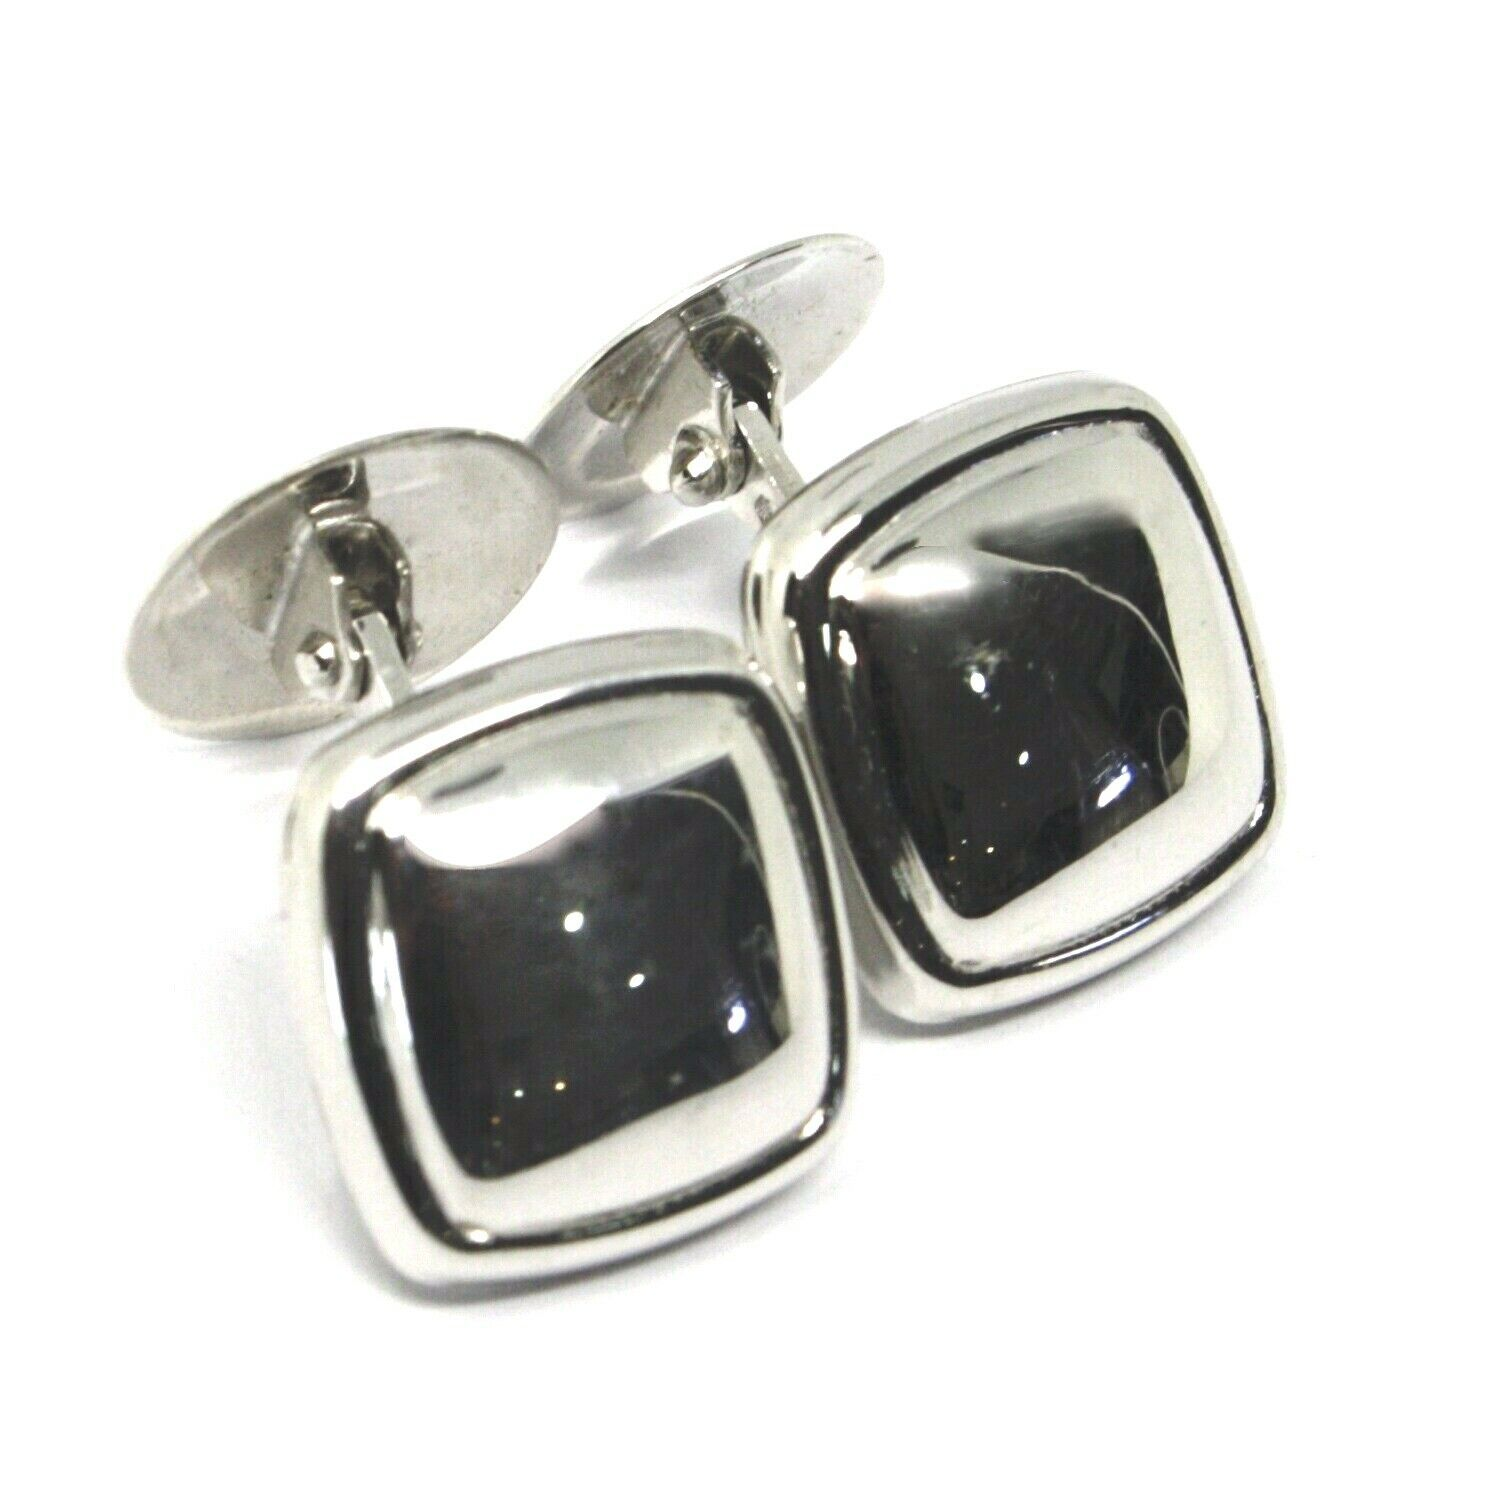 18K WHITE GOLD CUFFLINKS, ROUNDED SQUARE BUTTON, MADE IN ITALY